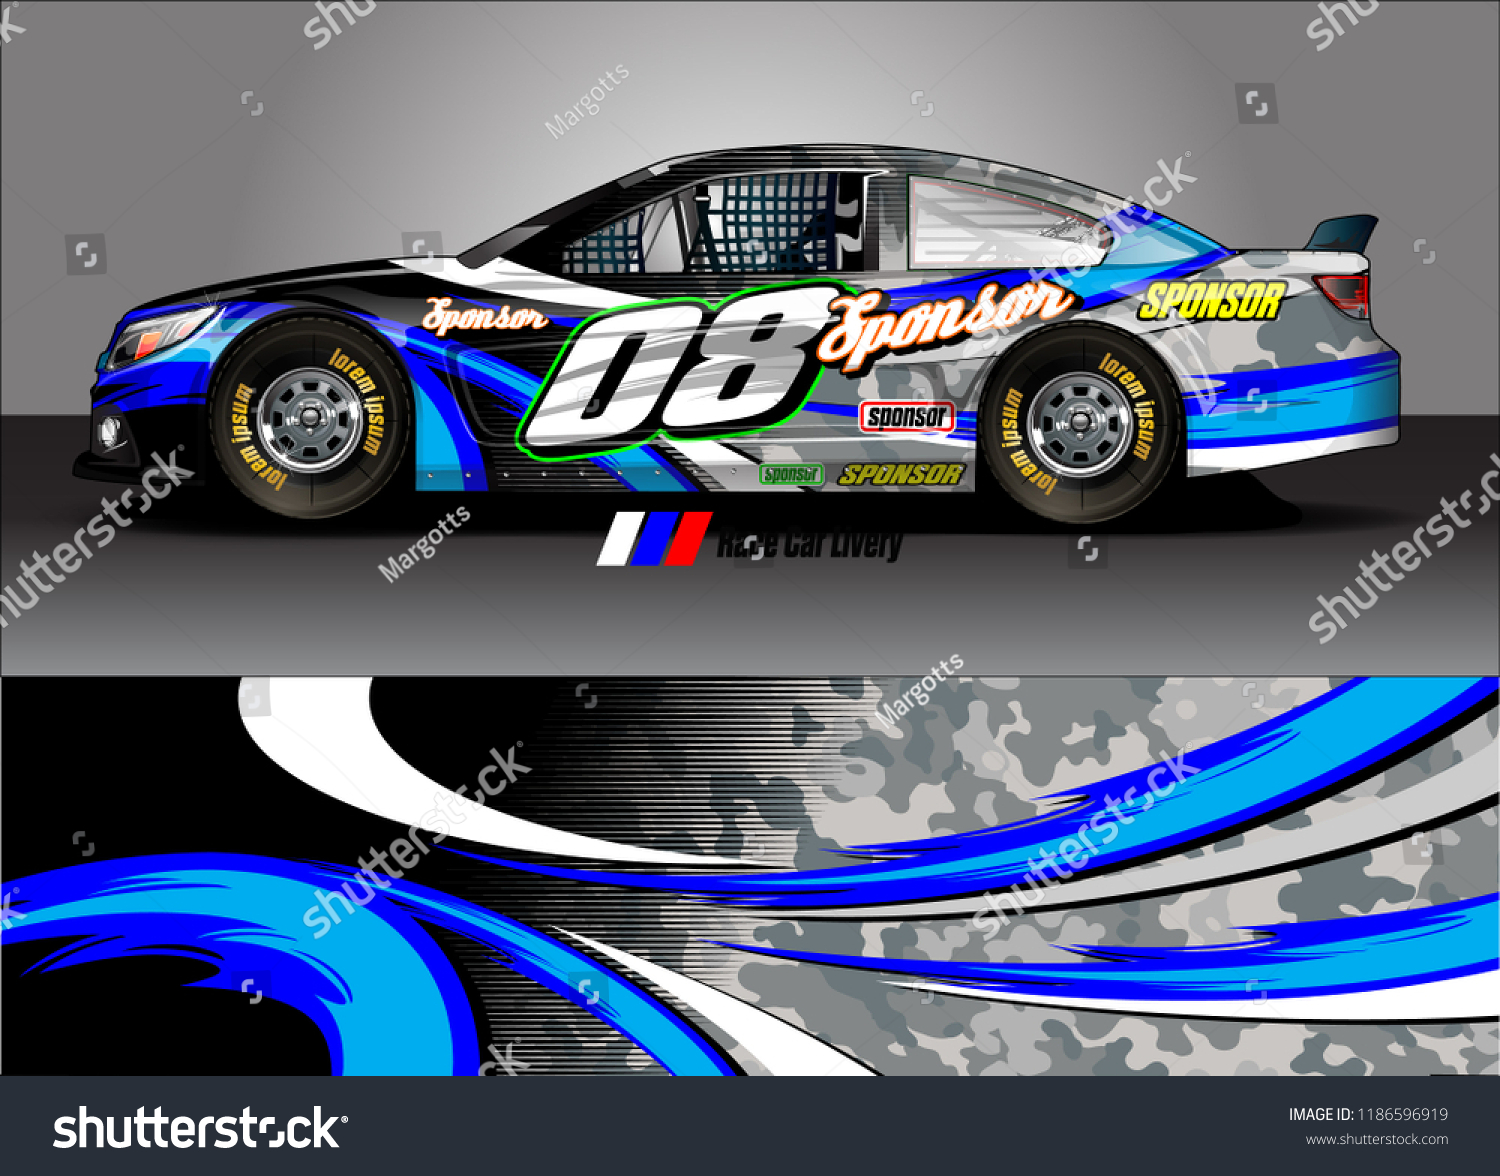 Car decal design vector abstract racing graphic stripe background kit for vehicle vinyl wrap